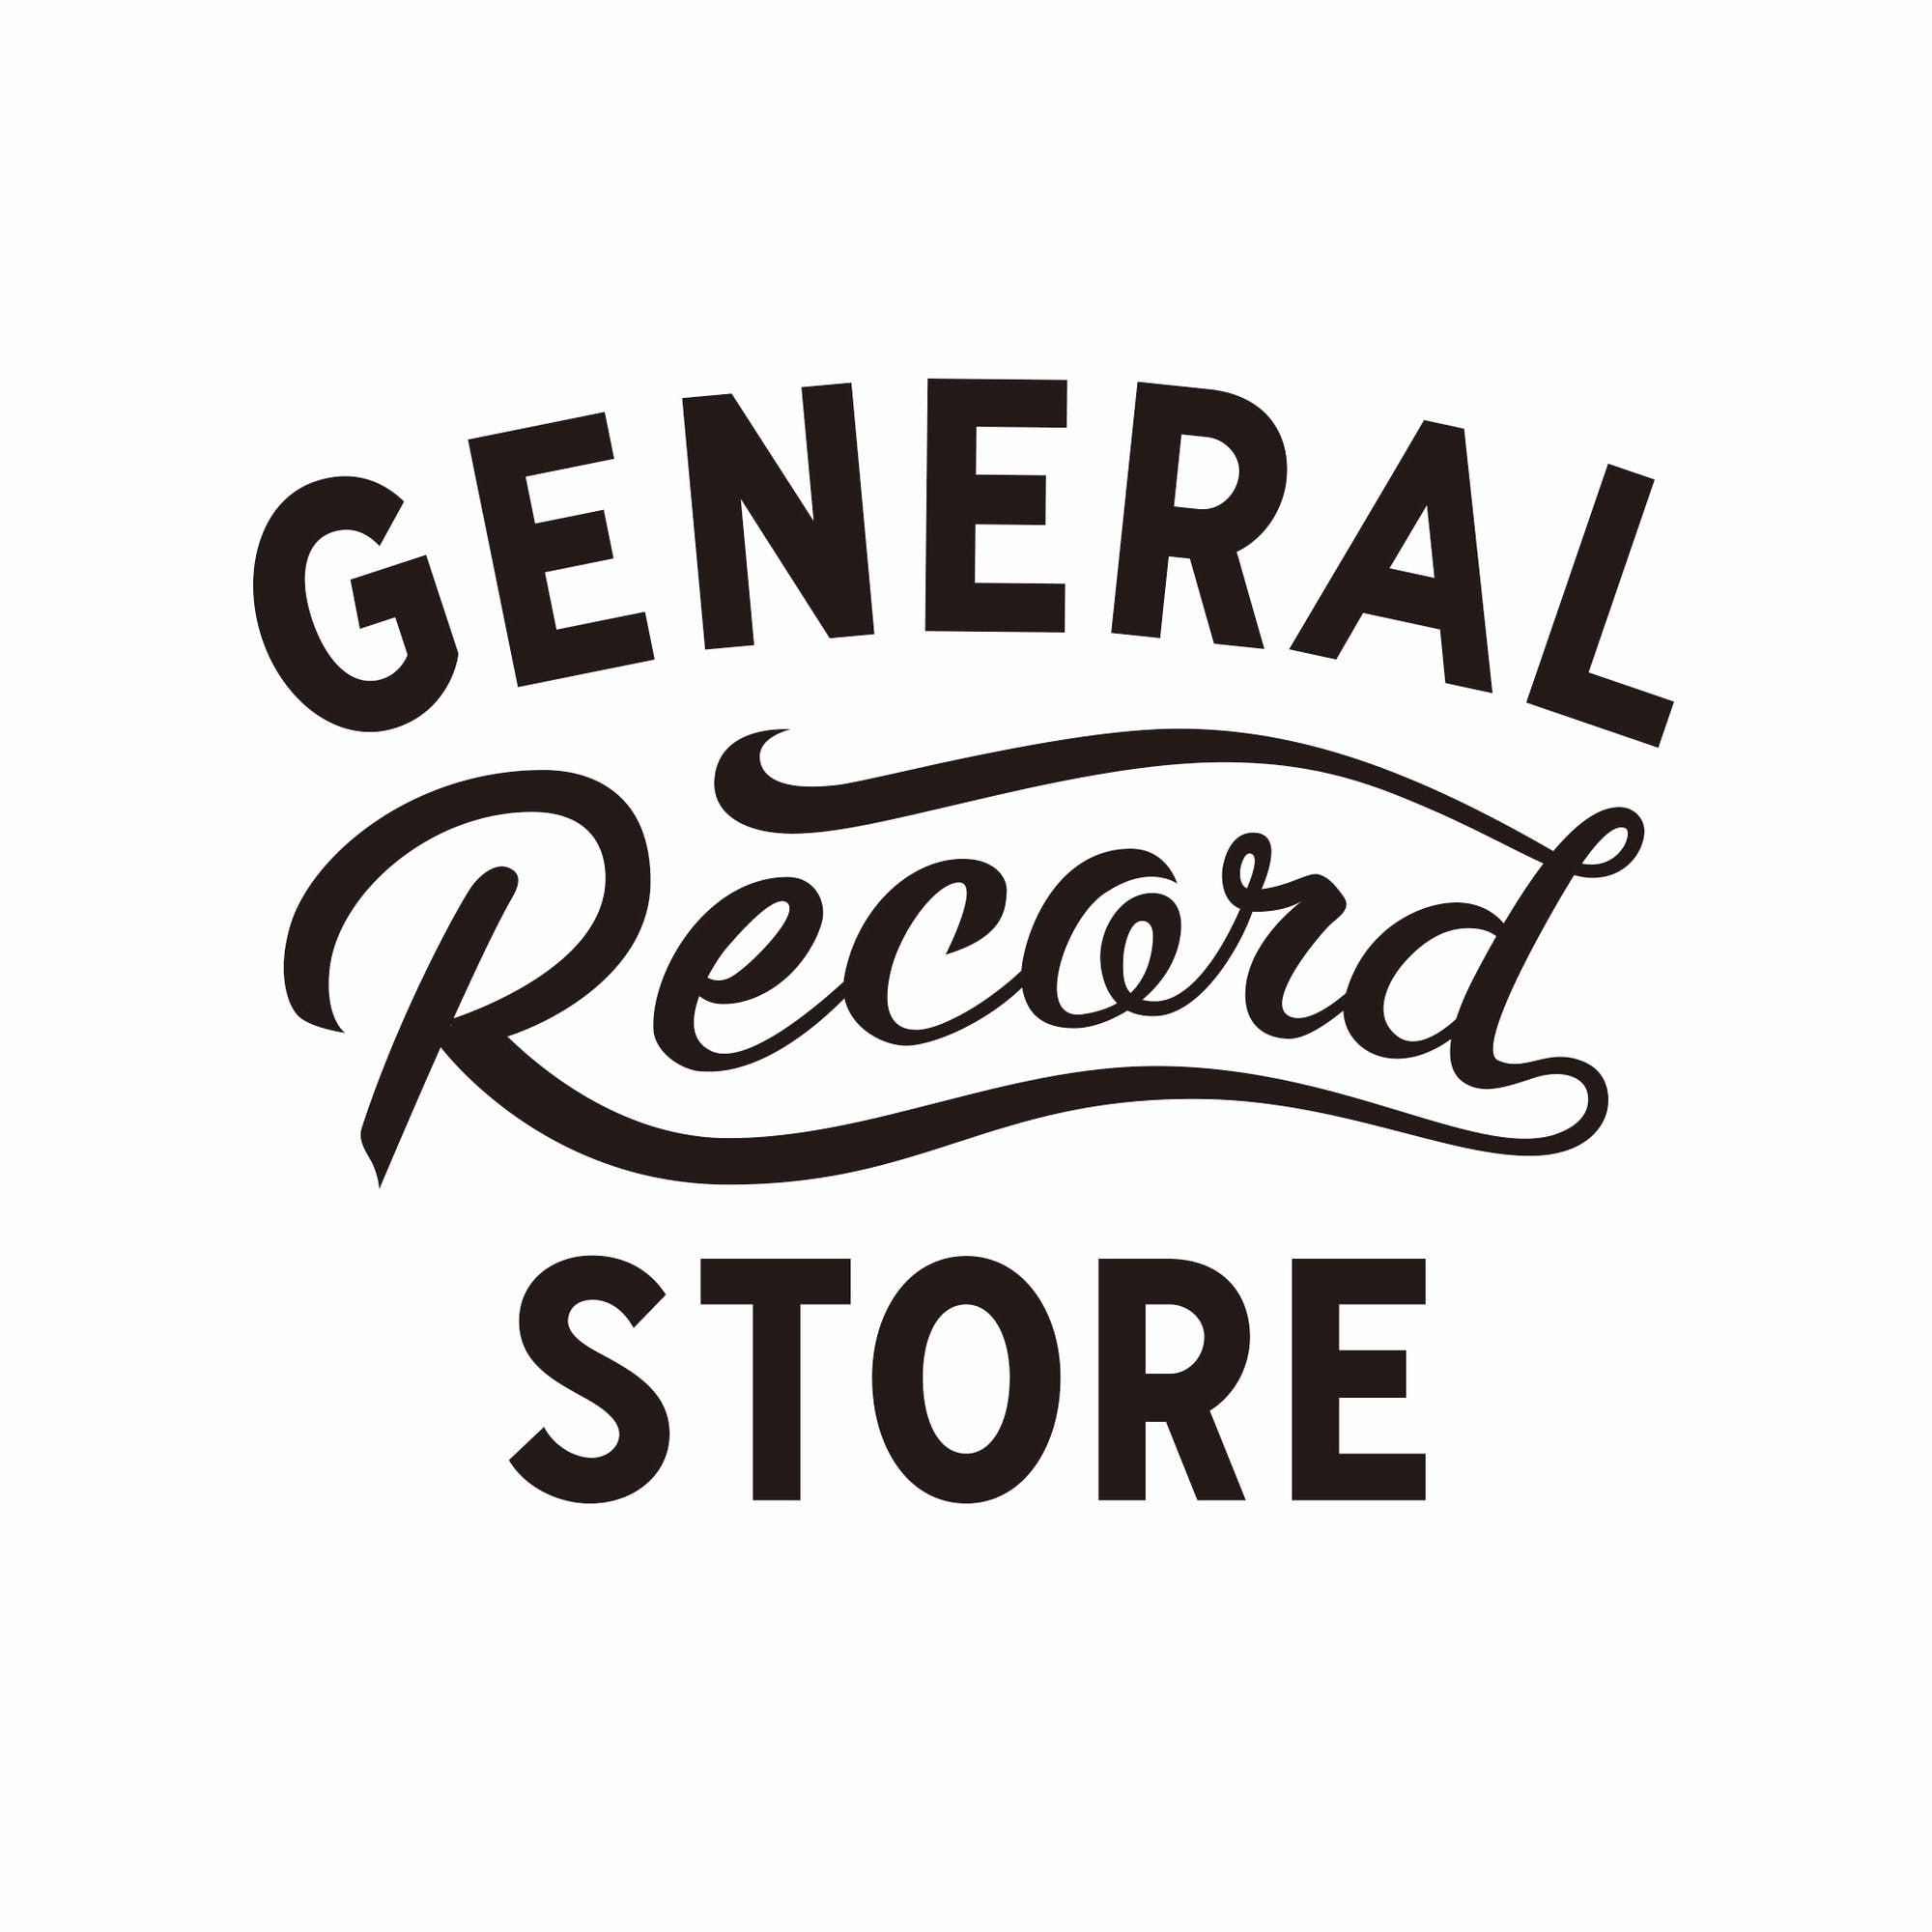 General Record Store - Record Store Image